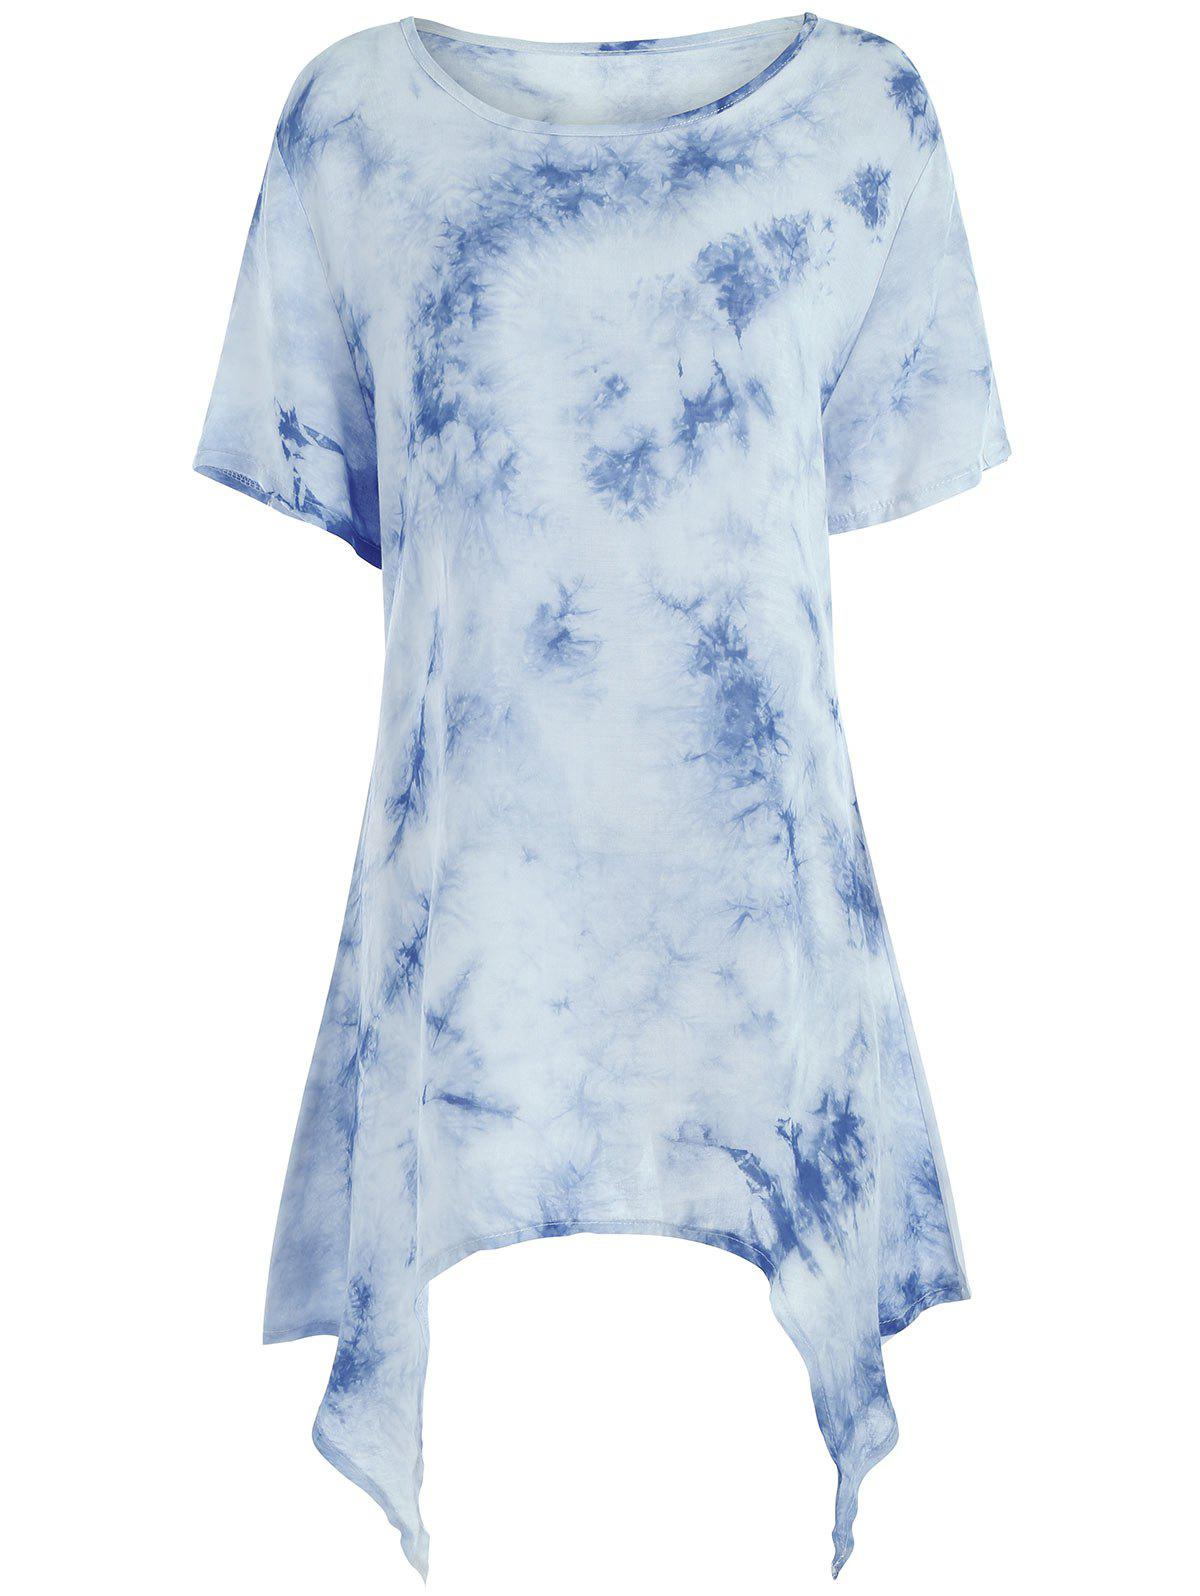 Asymmetrical Tie Dye Plus Size Tunic TopWOMEN<br><br>Size: 2XL; Color: BLUE; Material: Polyester; Shirt Length: Long; Sleeve Length: Short; Collar: Round Neck; Style: Casual; Season: Summer; Pattern Type: Others; Weight: 0.1800kg; Package Contents: 1 x Top;